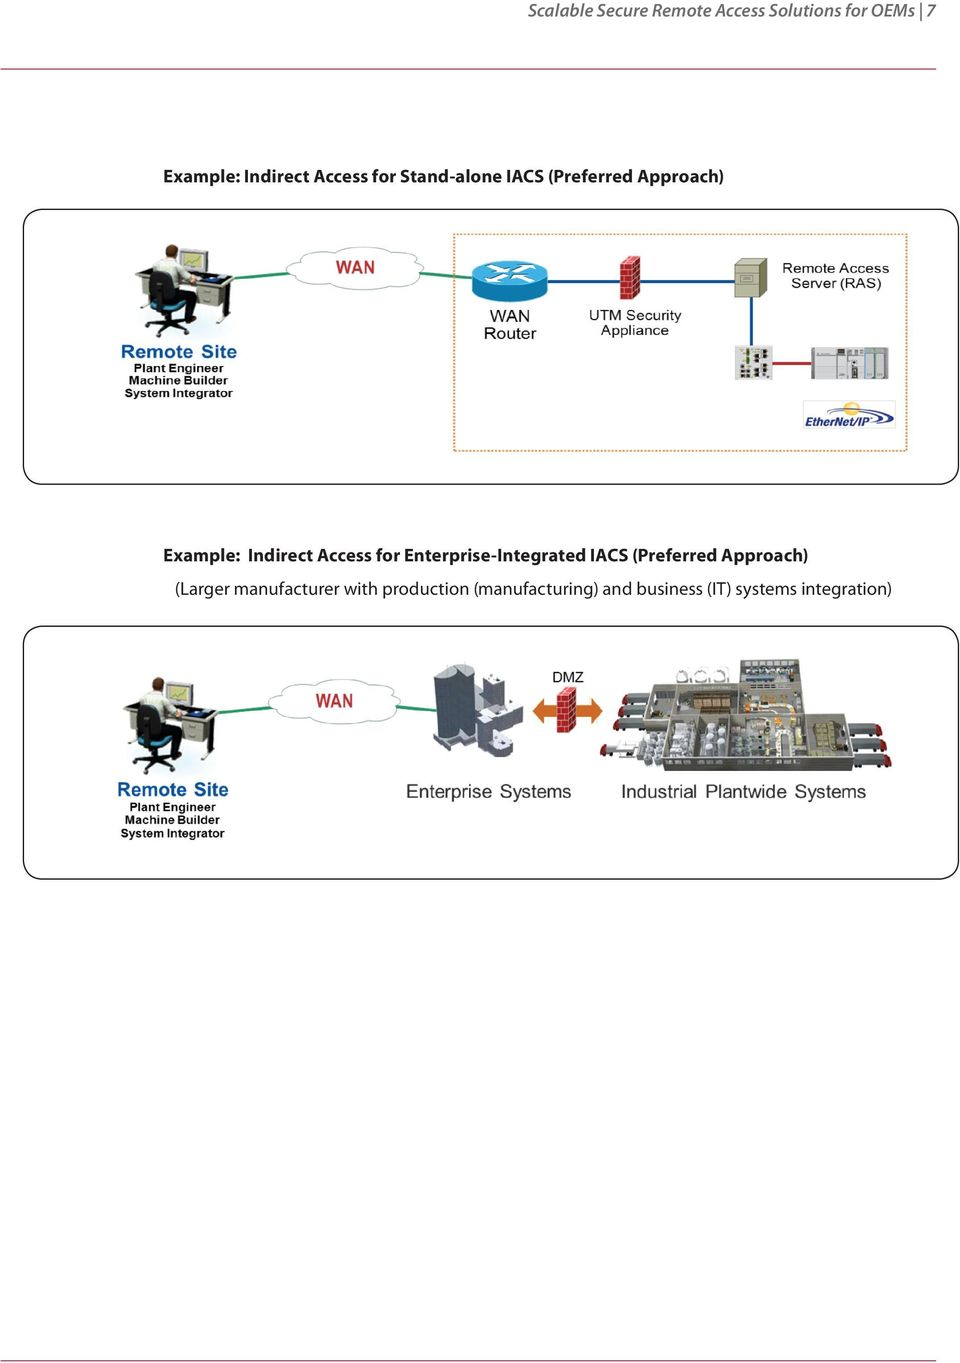 Access for Enterprise-Integrated IACS (Preferred Approach) (Larger